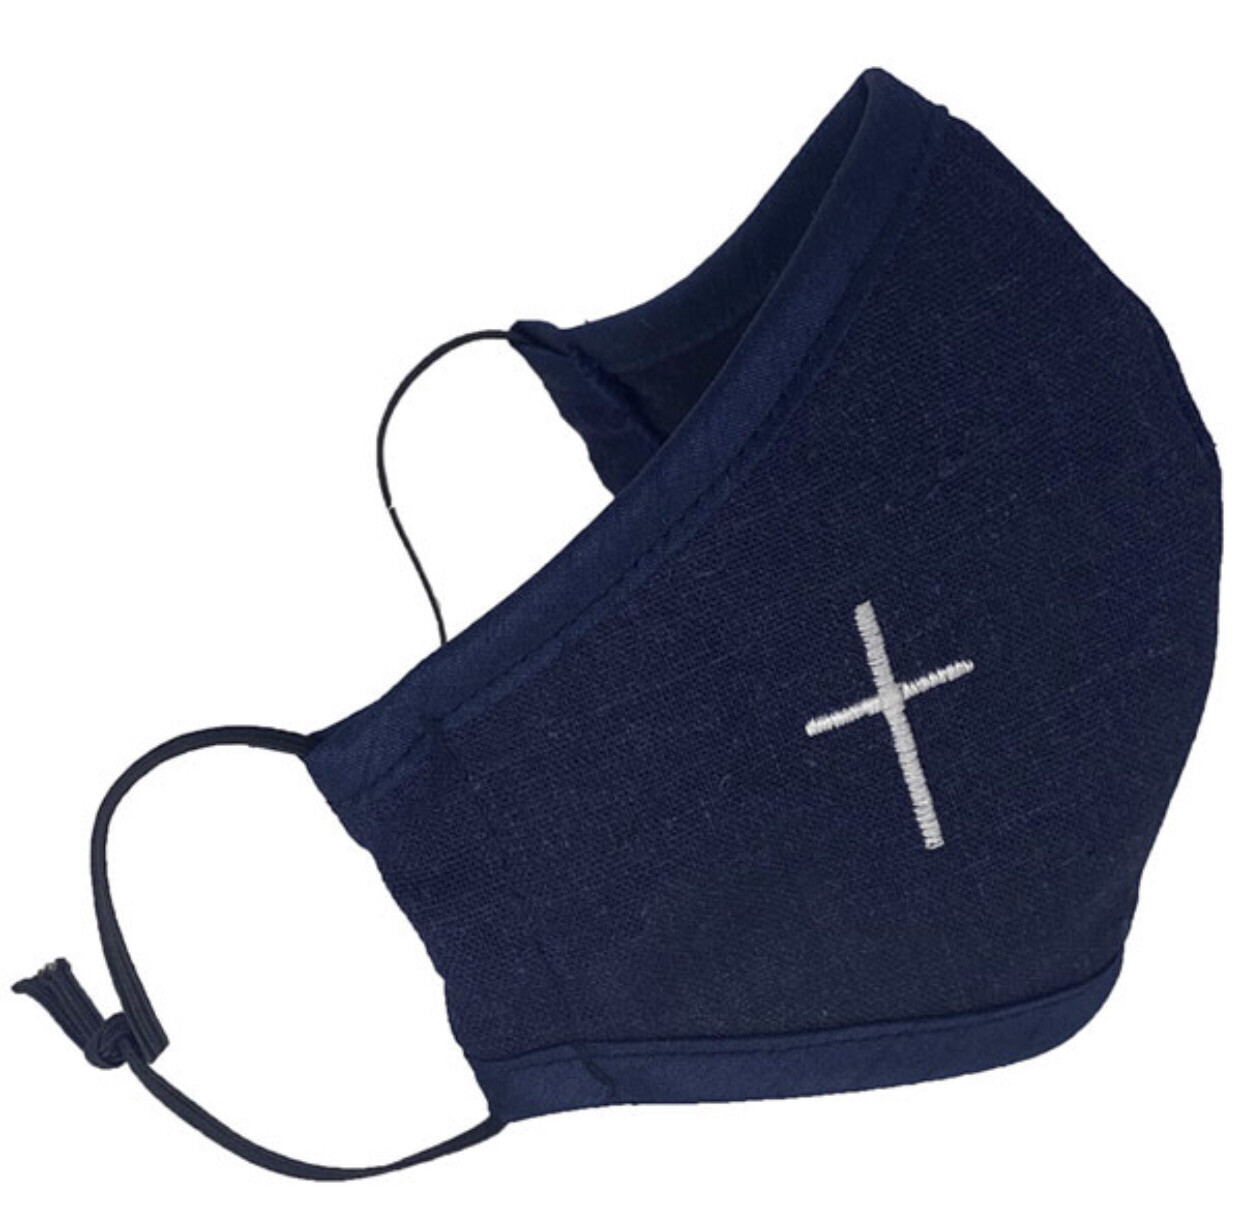 Navy Blue Mask With White Cross Embroidery (Child Size)